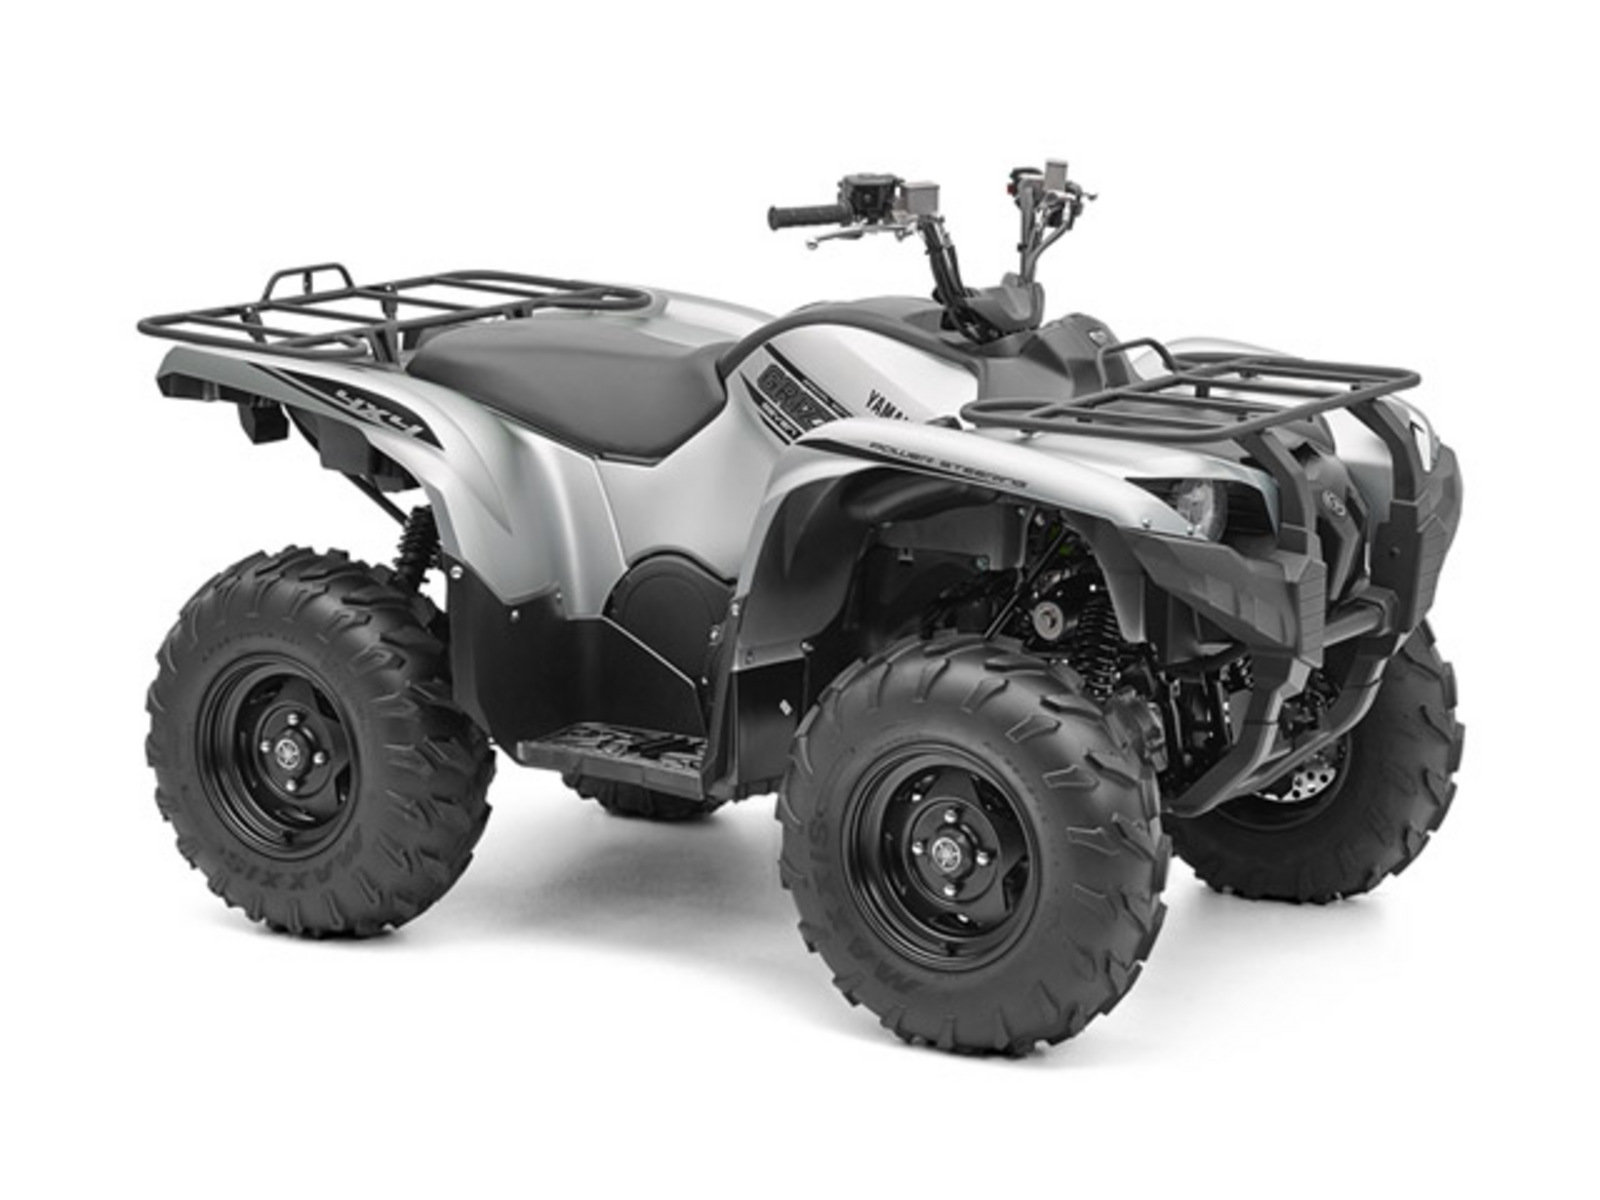 2015 yamaha grizzly 700 fi auto 4x4 eps se review top speed. Black Bedroom Furniture Sets. Home Design Ideas